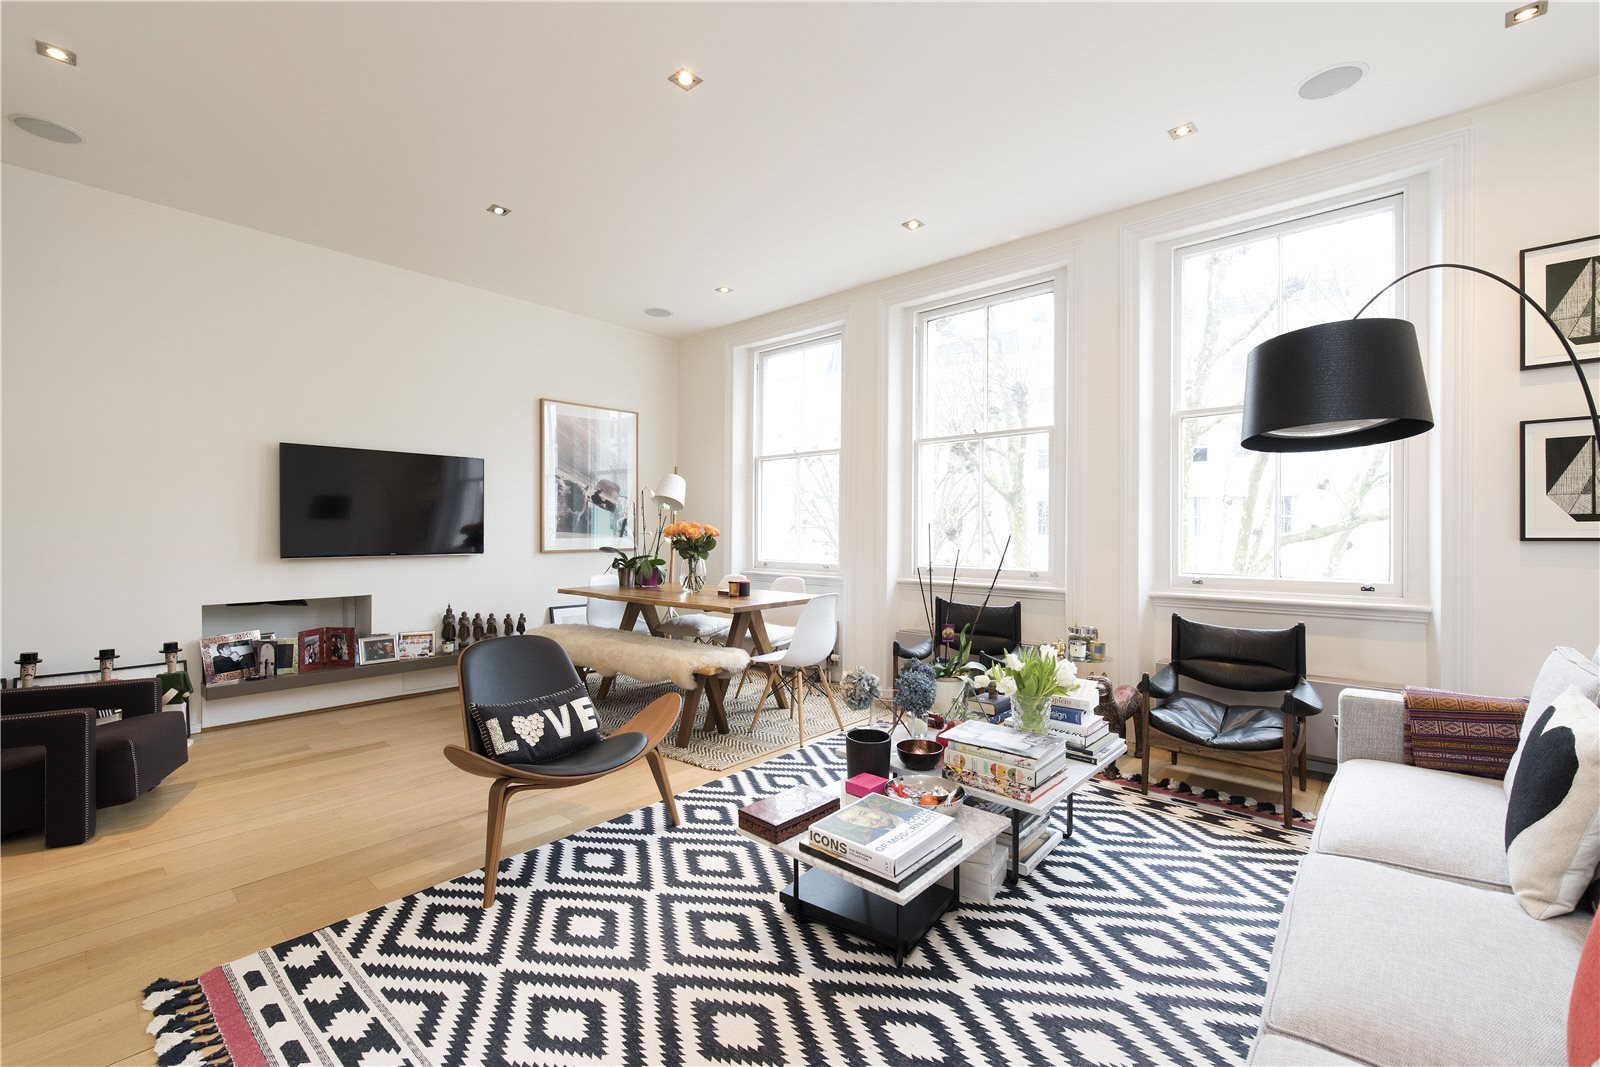 Inverness Terrace, Bayswater, London, W2 Bayswater, London, England